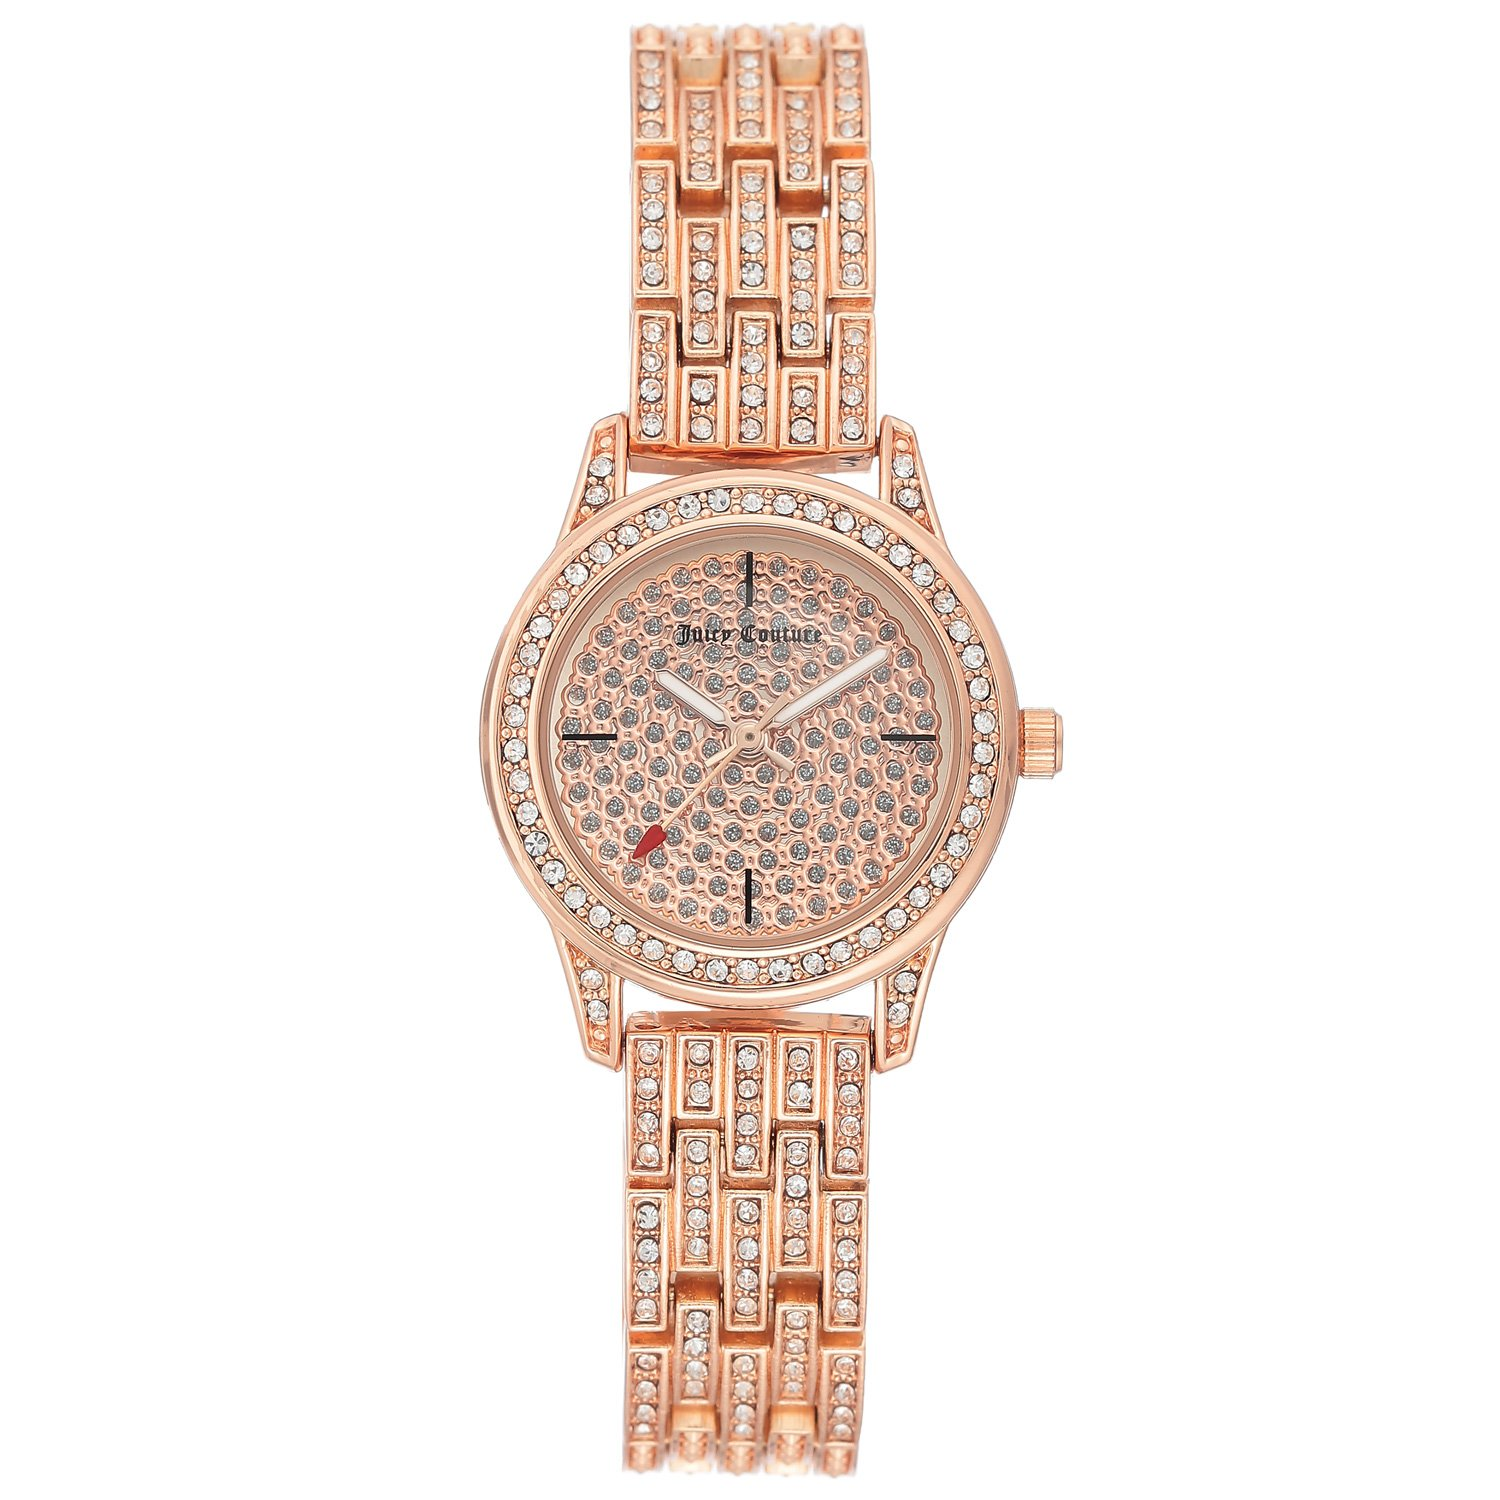 Juicy Couture Women's Watch Rose Gold JC/1144PVRG